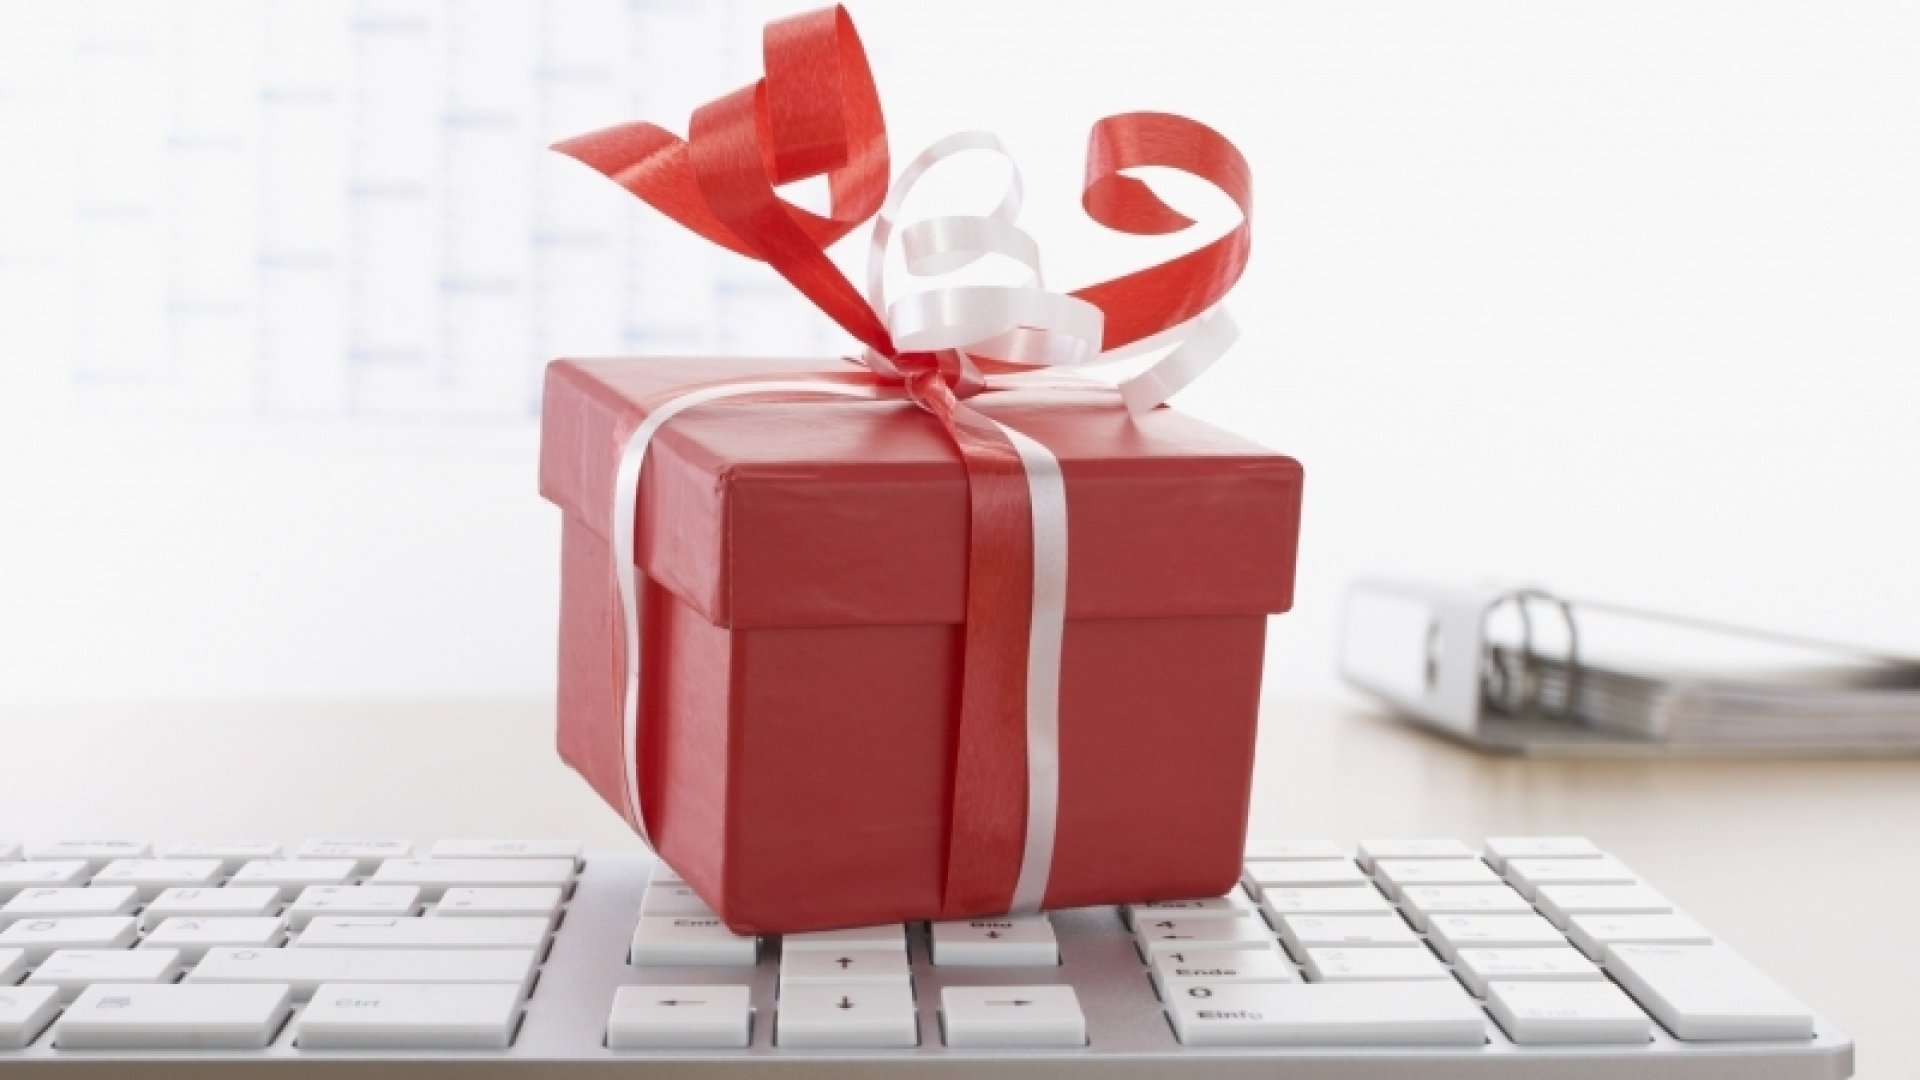 10 Innovative Gift Ideas To Help Someone's Performance at Work